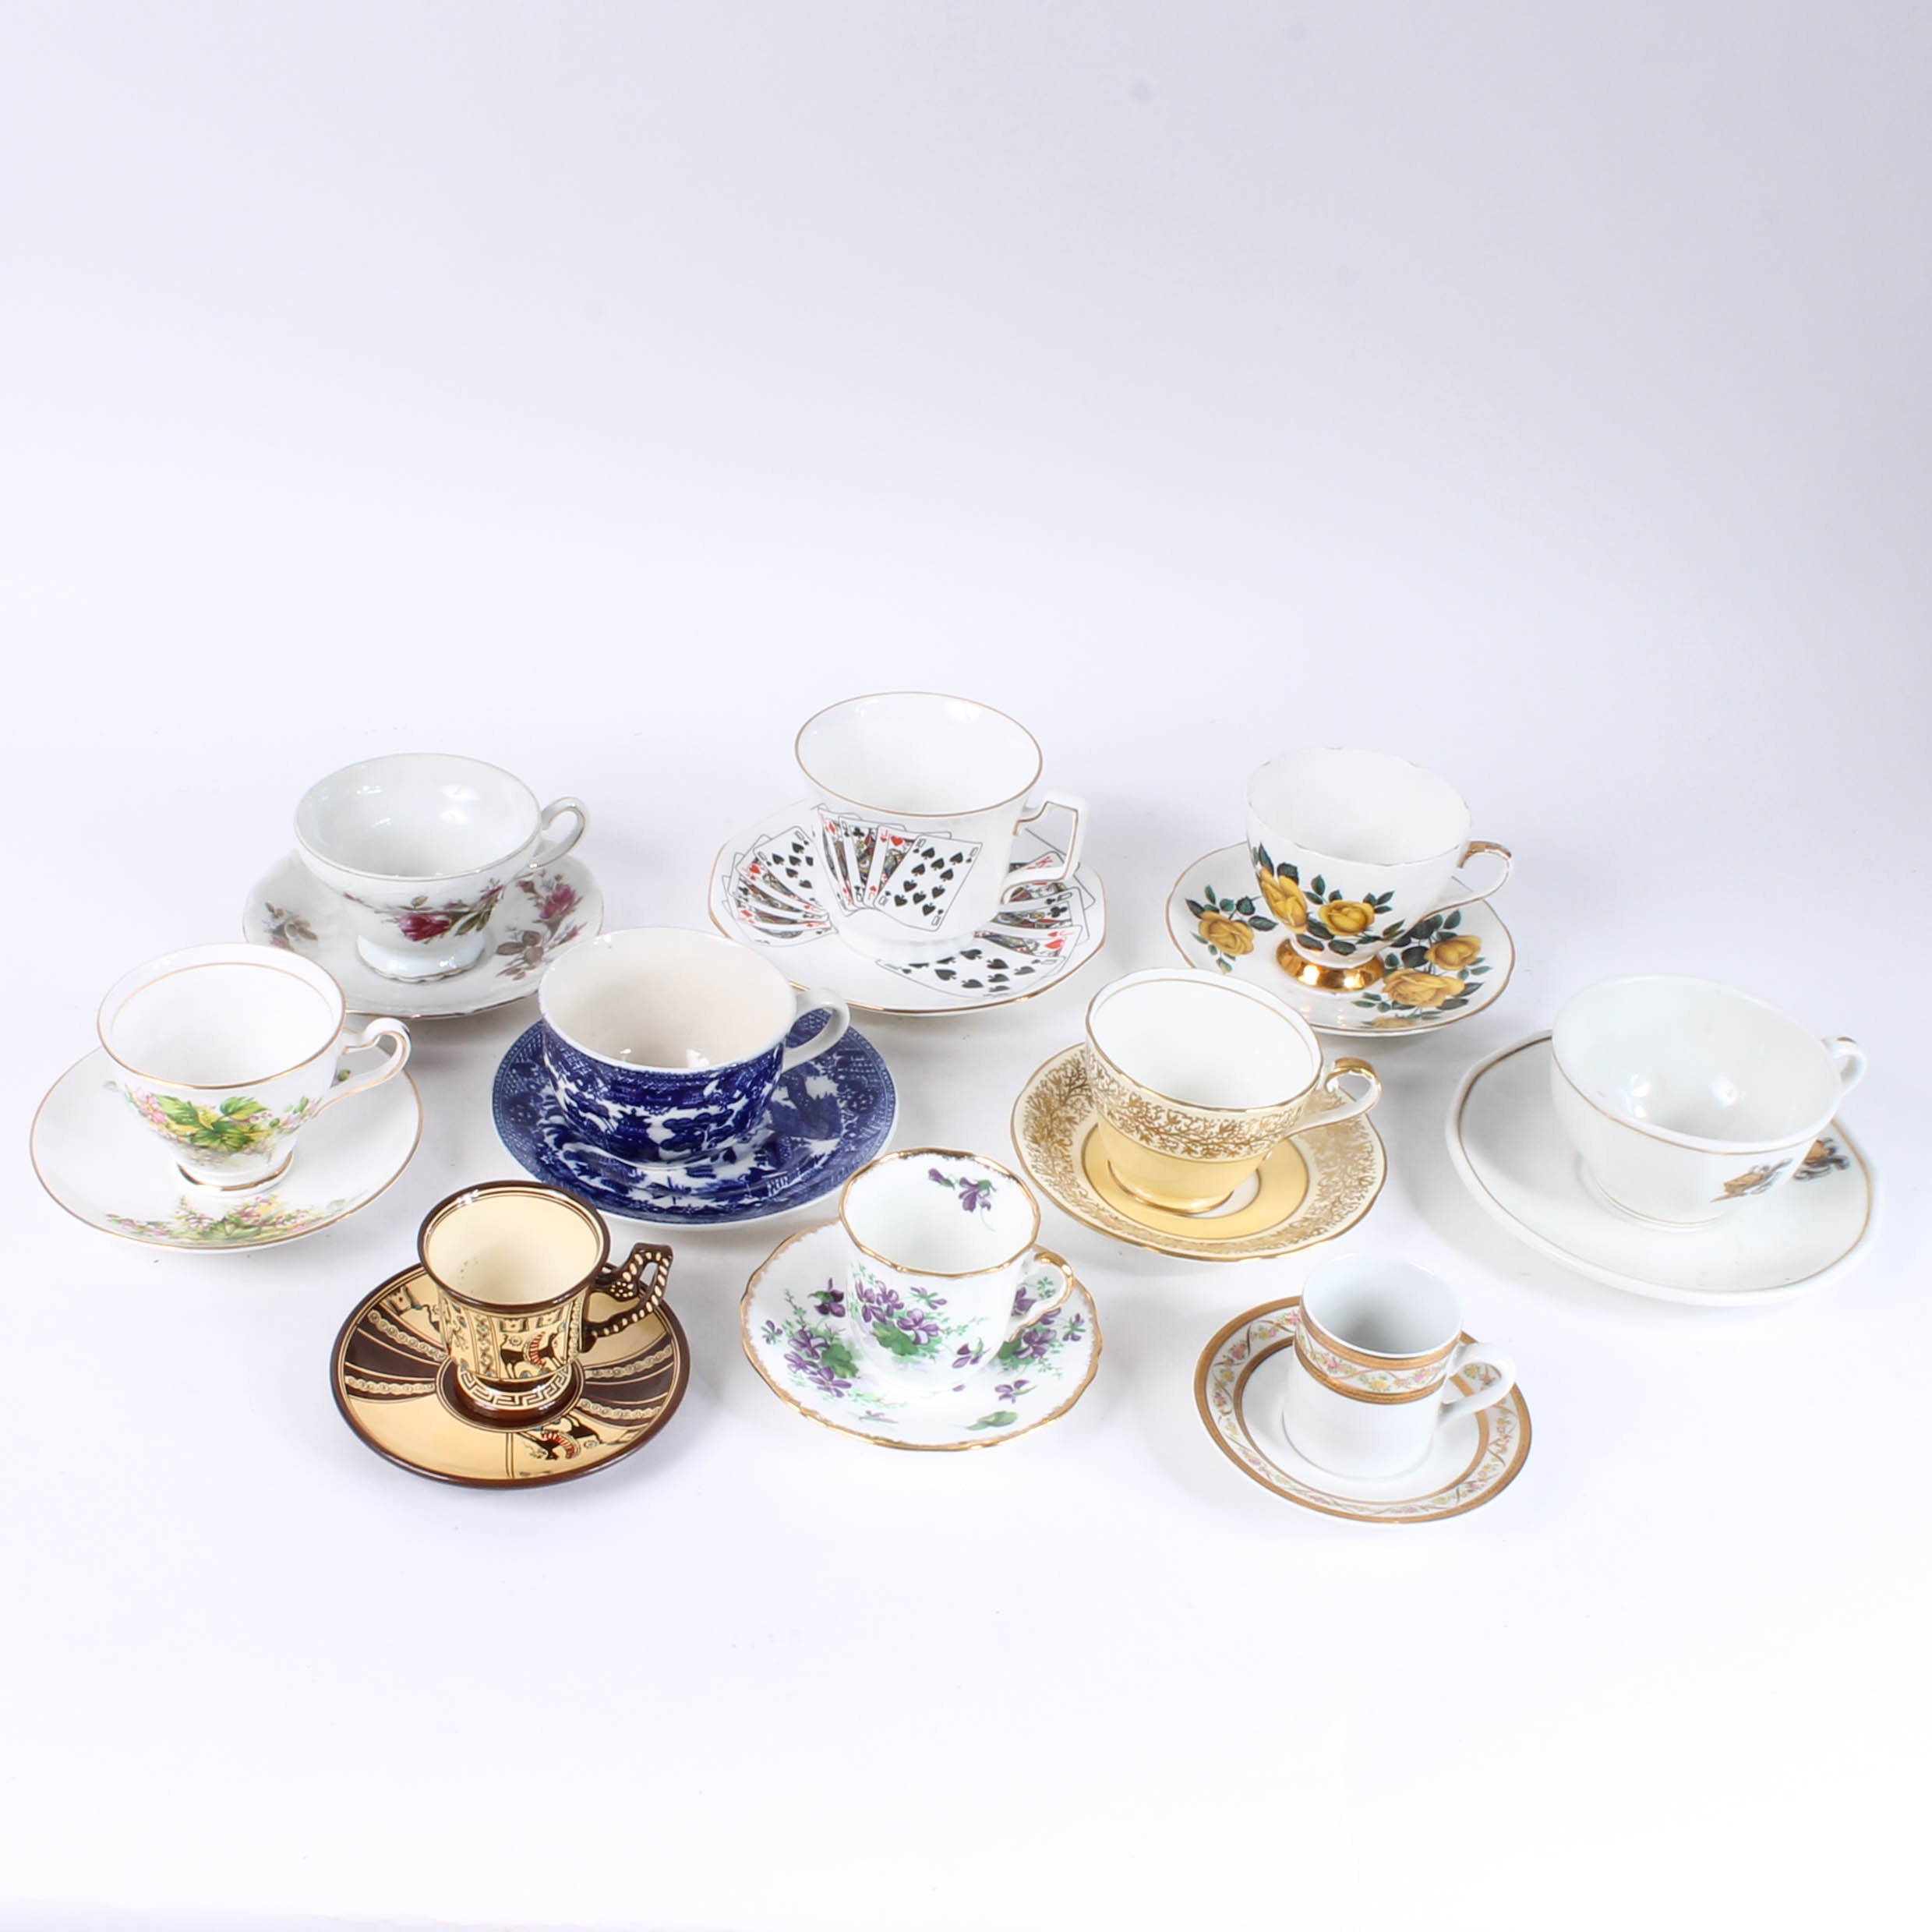 Assortment of Vintage China Cups and Saucers